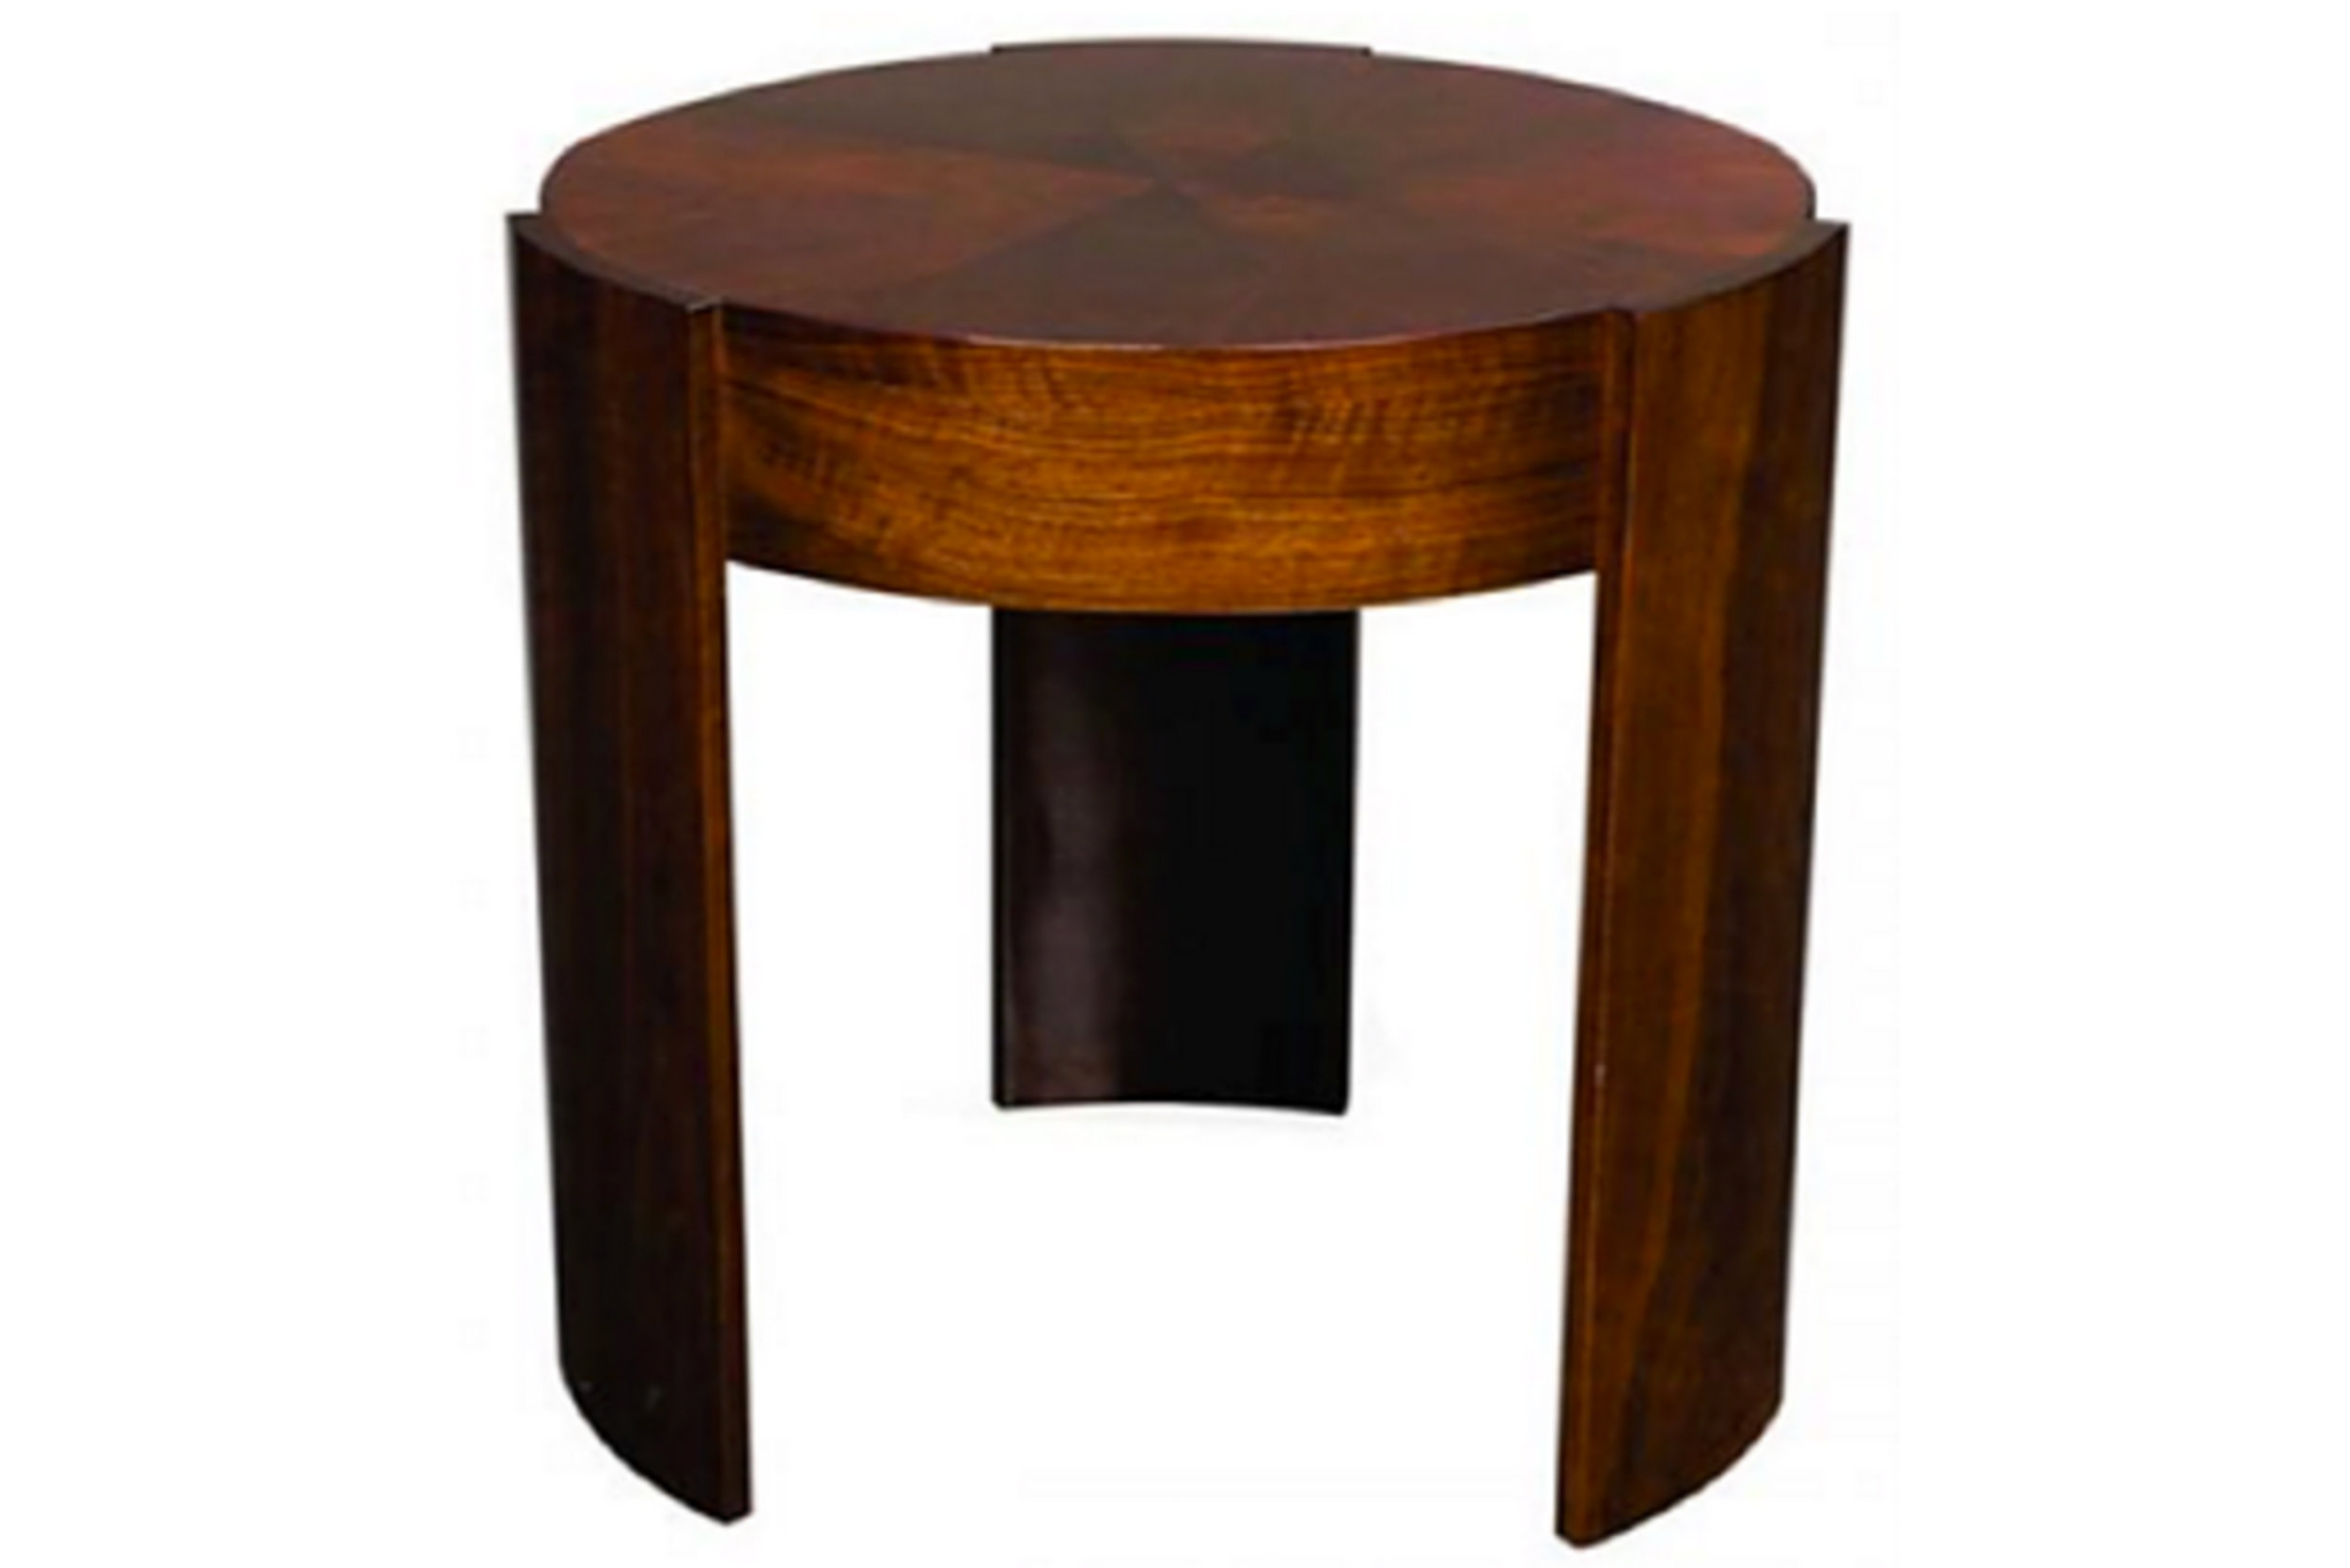 Brando End Table.jpg